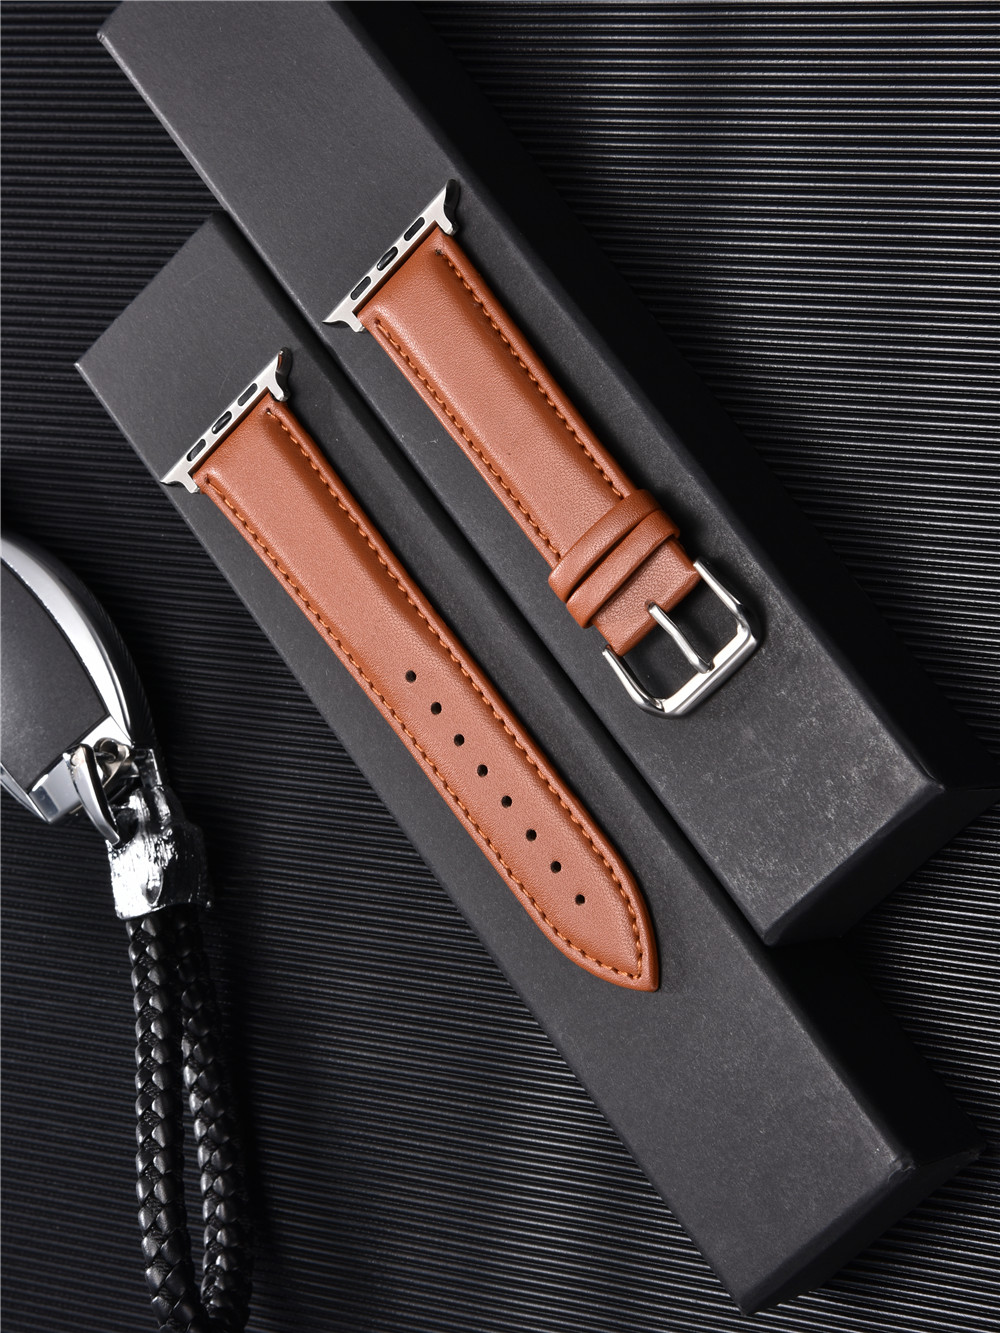 Calfskin Genuine Leather Watchband 38mm 40mm for iwatch 1 2 3 4 5 Soft Material Replace